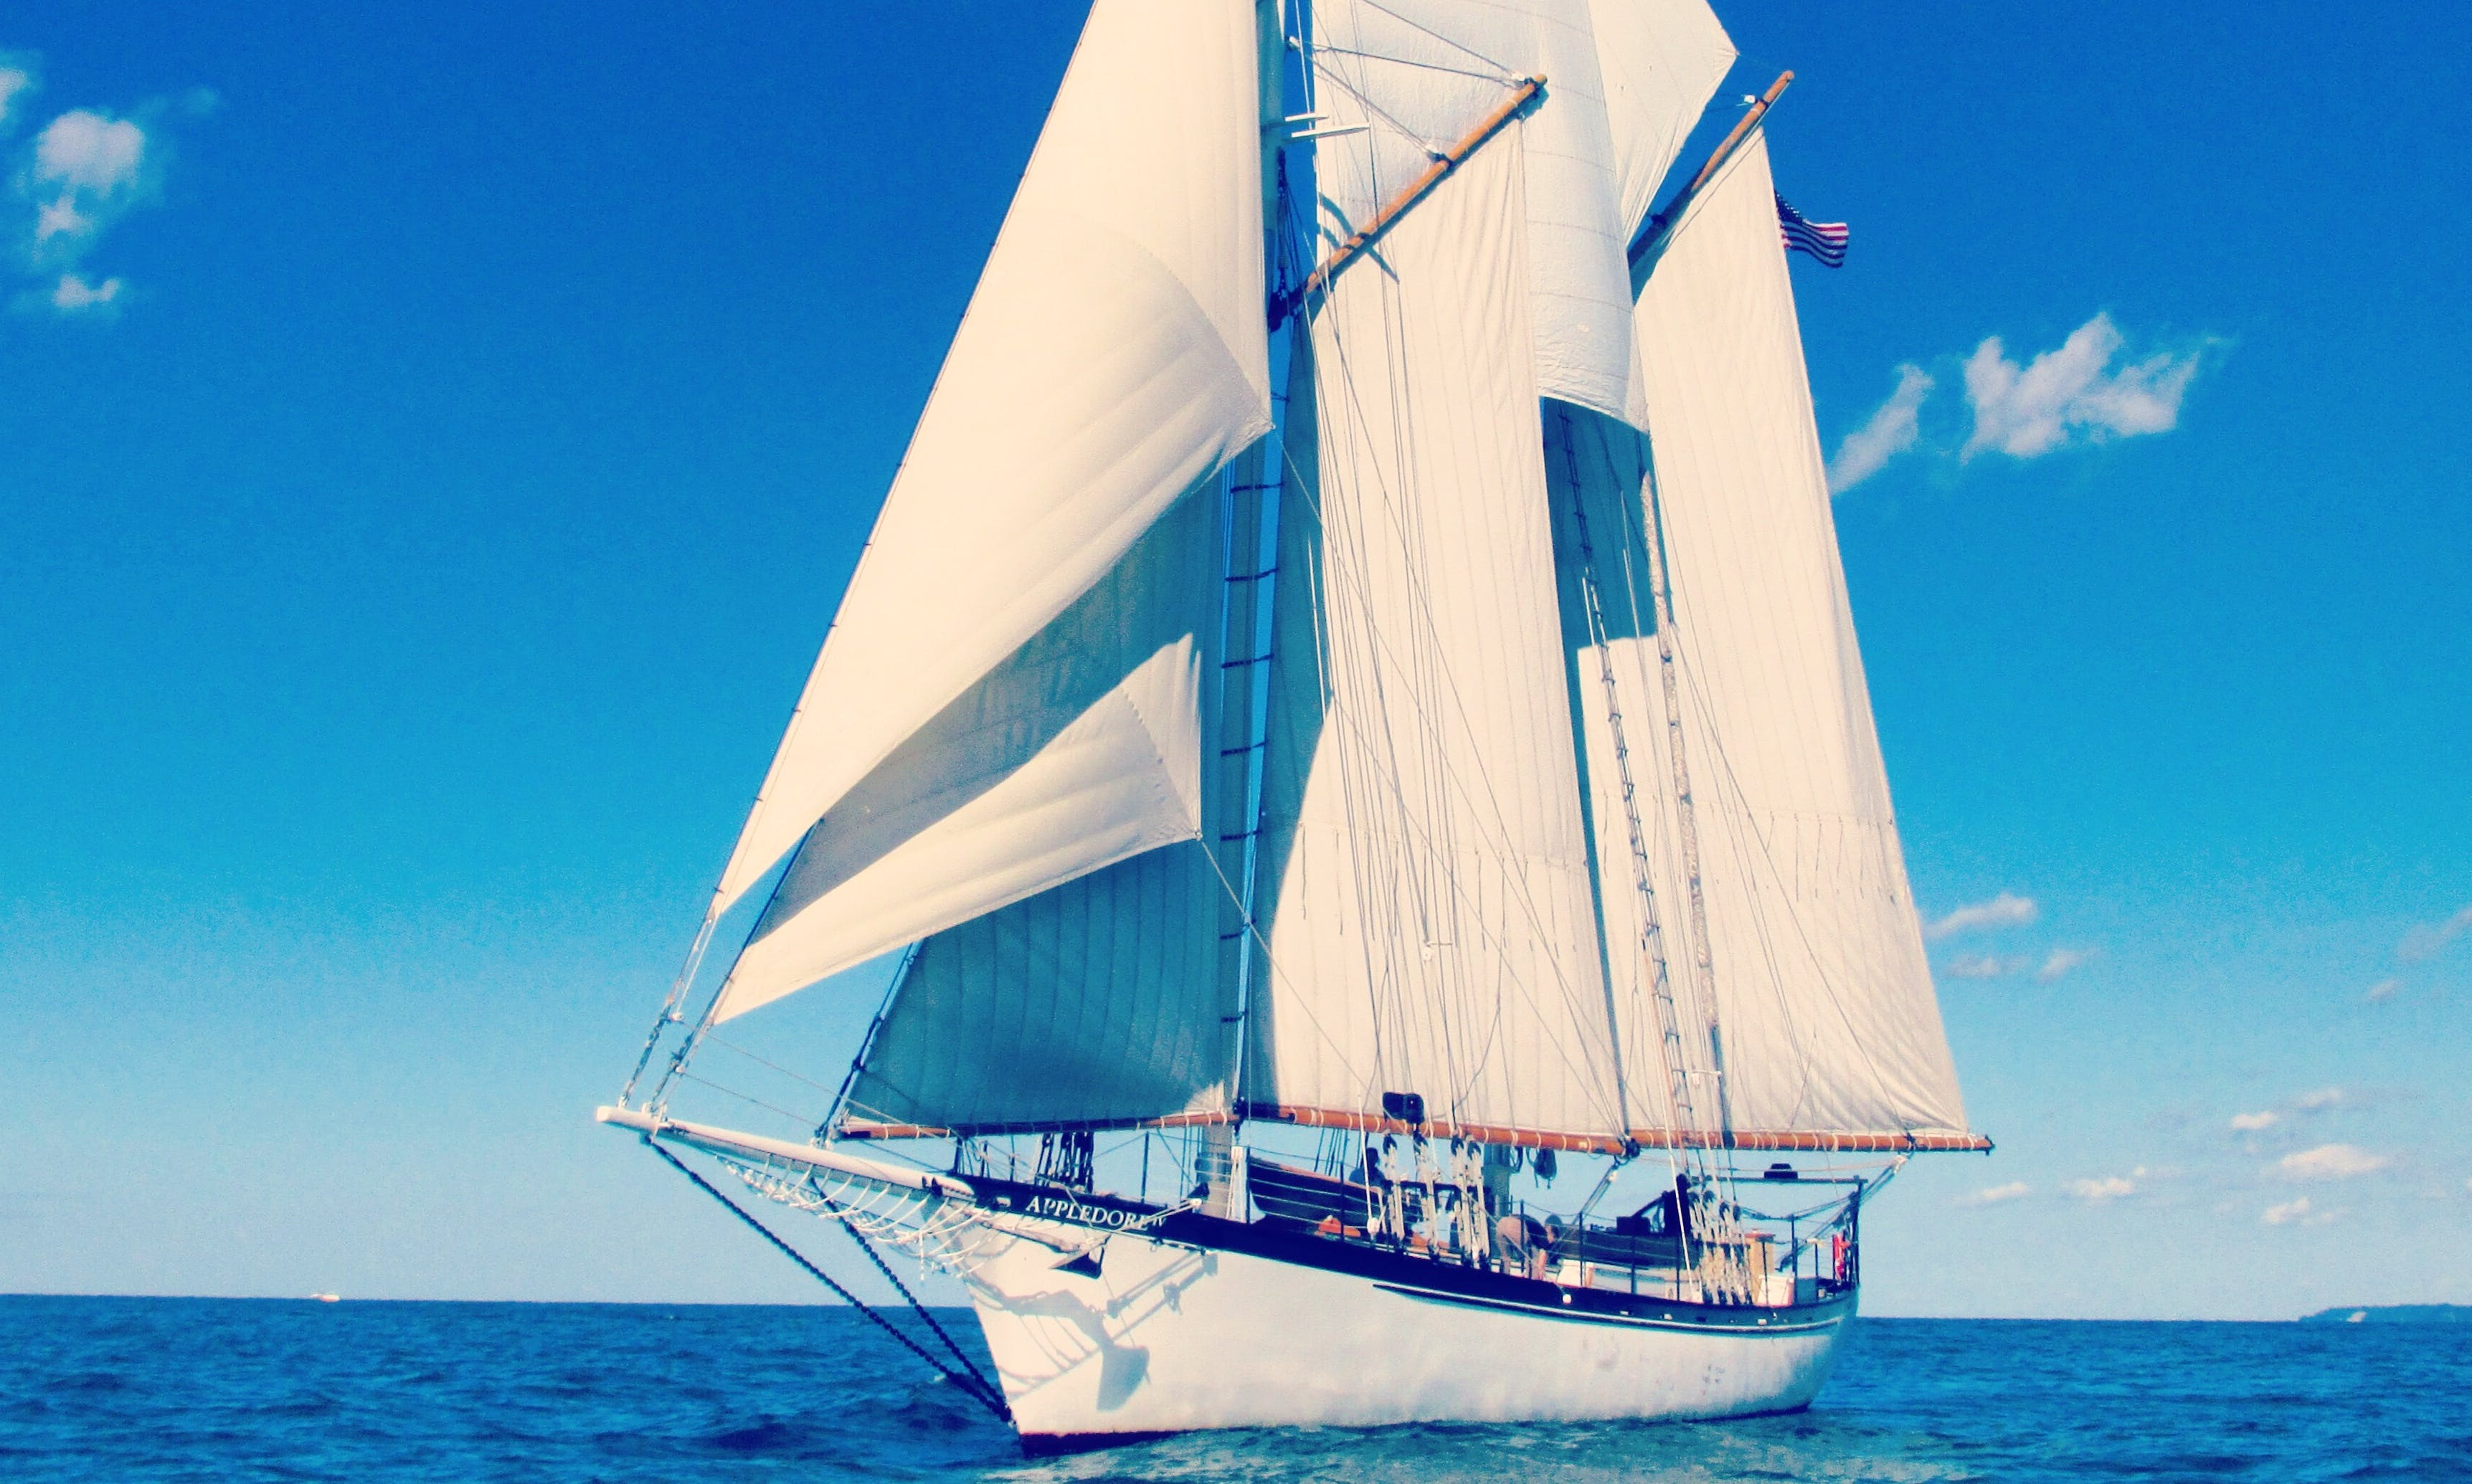 Schooner Rental in Bay City, Michigan